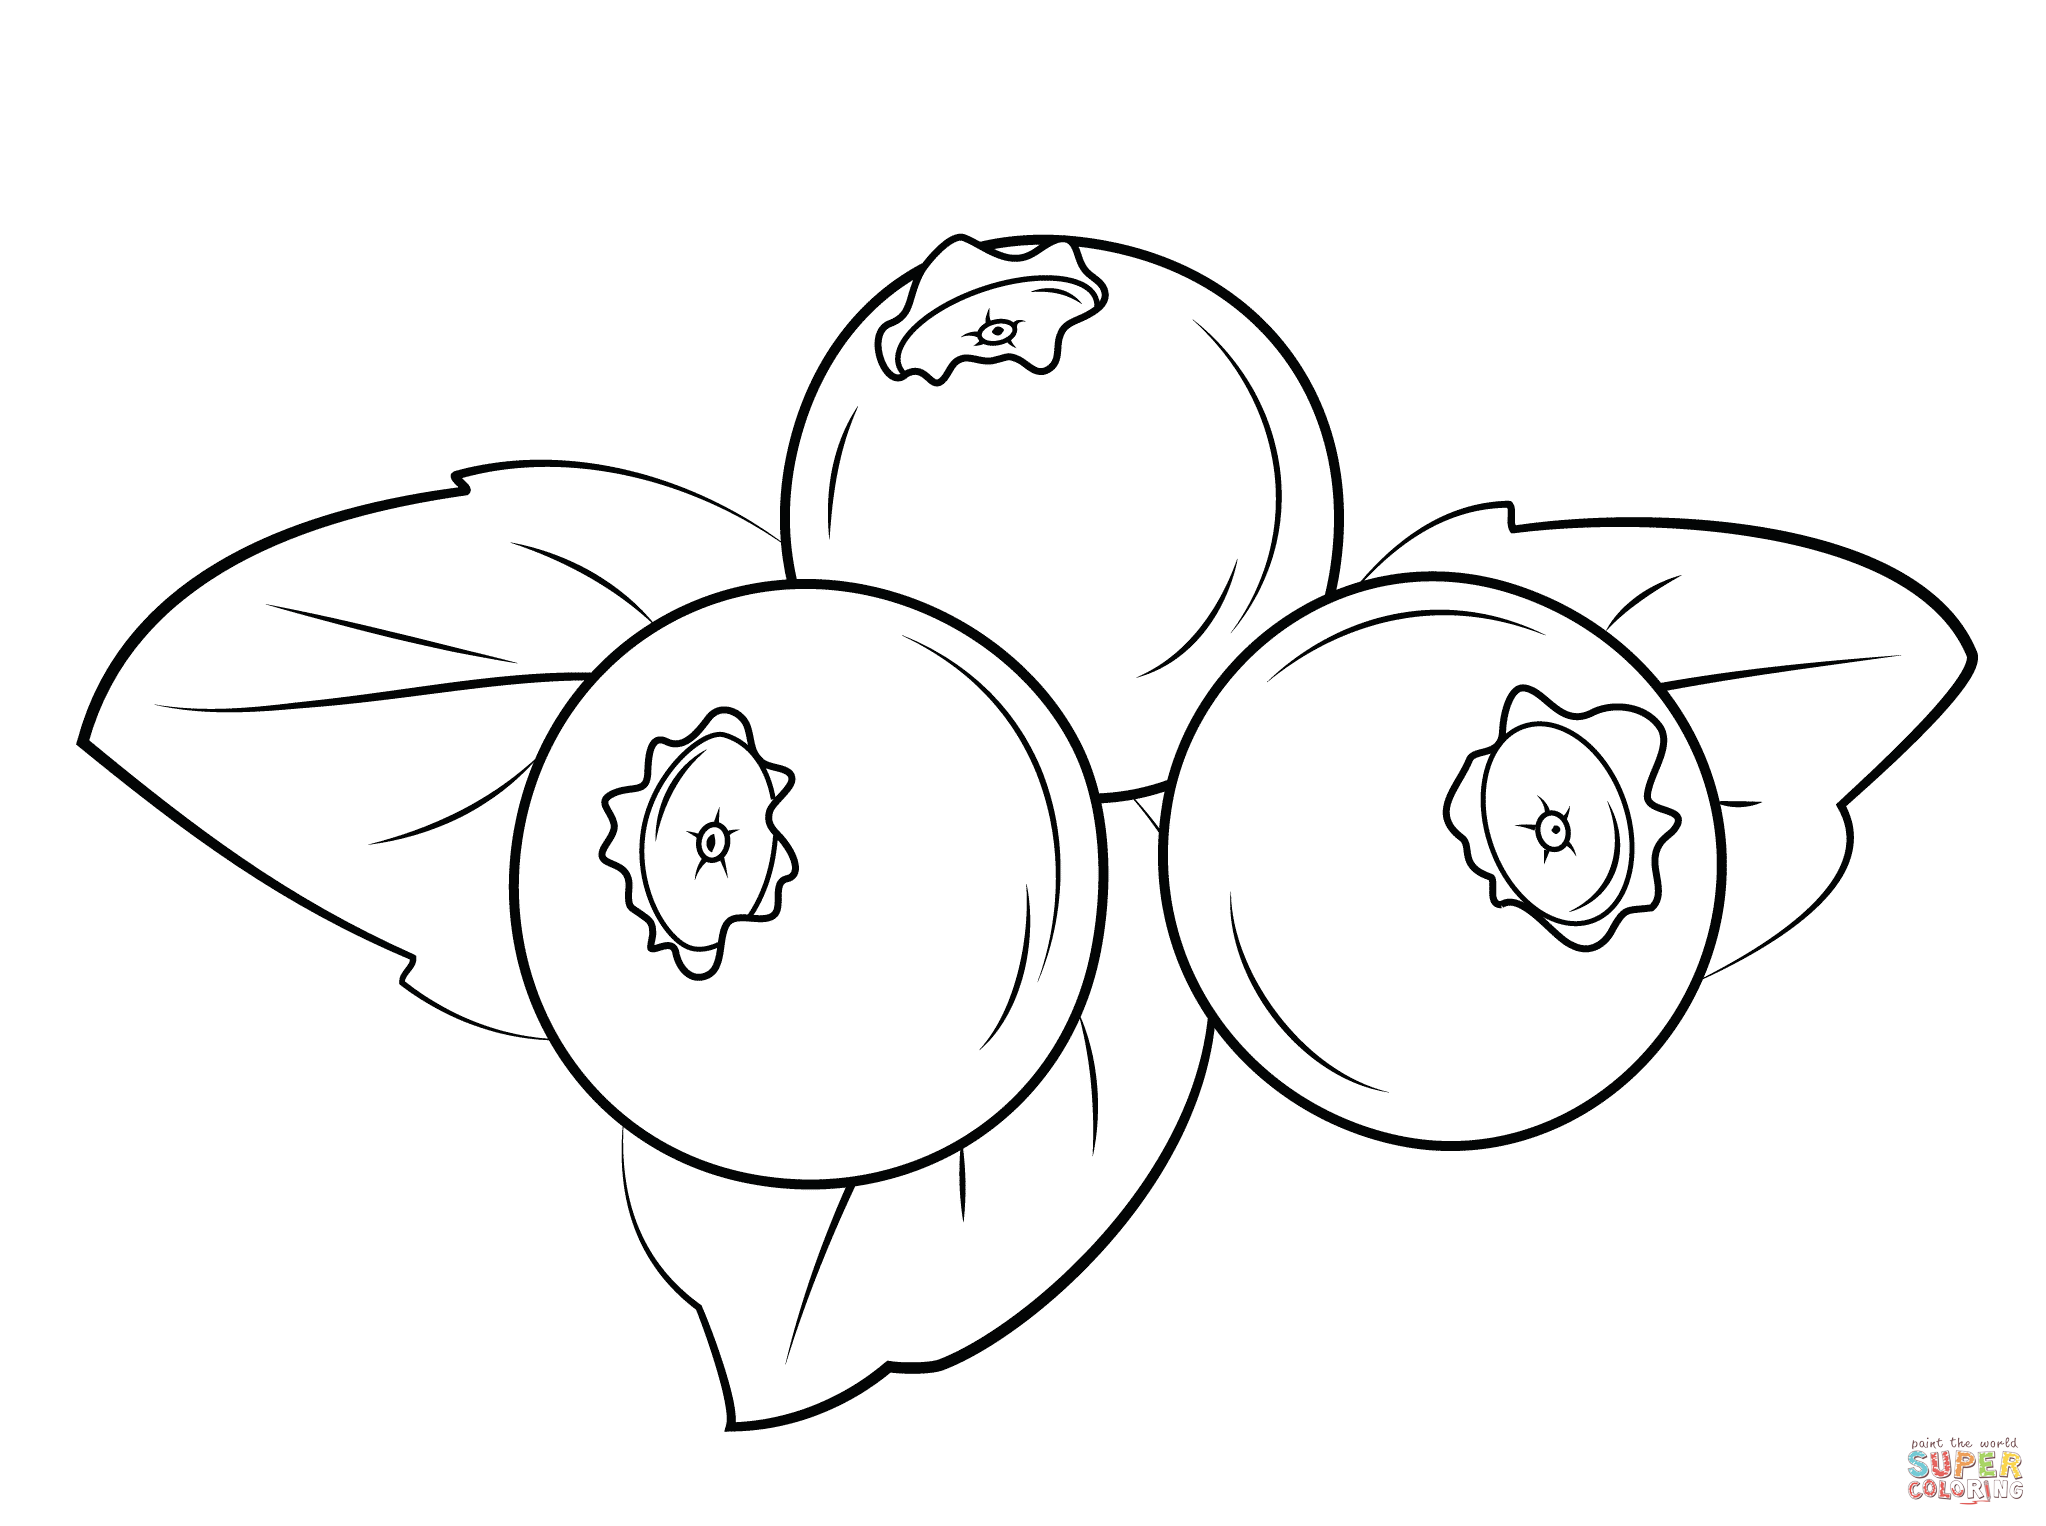 Blueberry drawing at free for personal for Blueberry coloring page